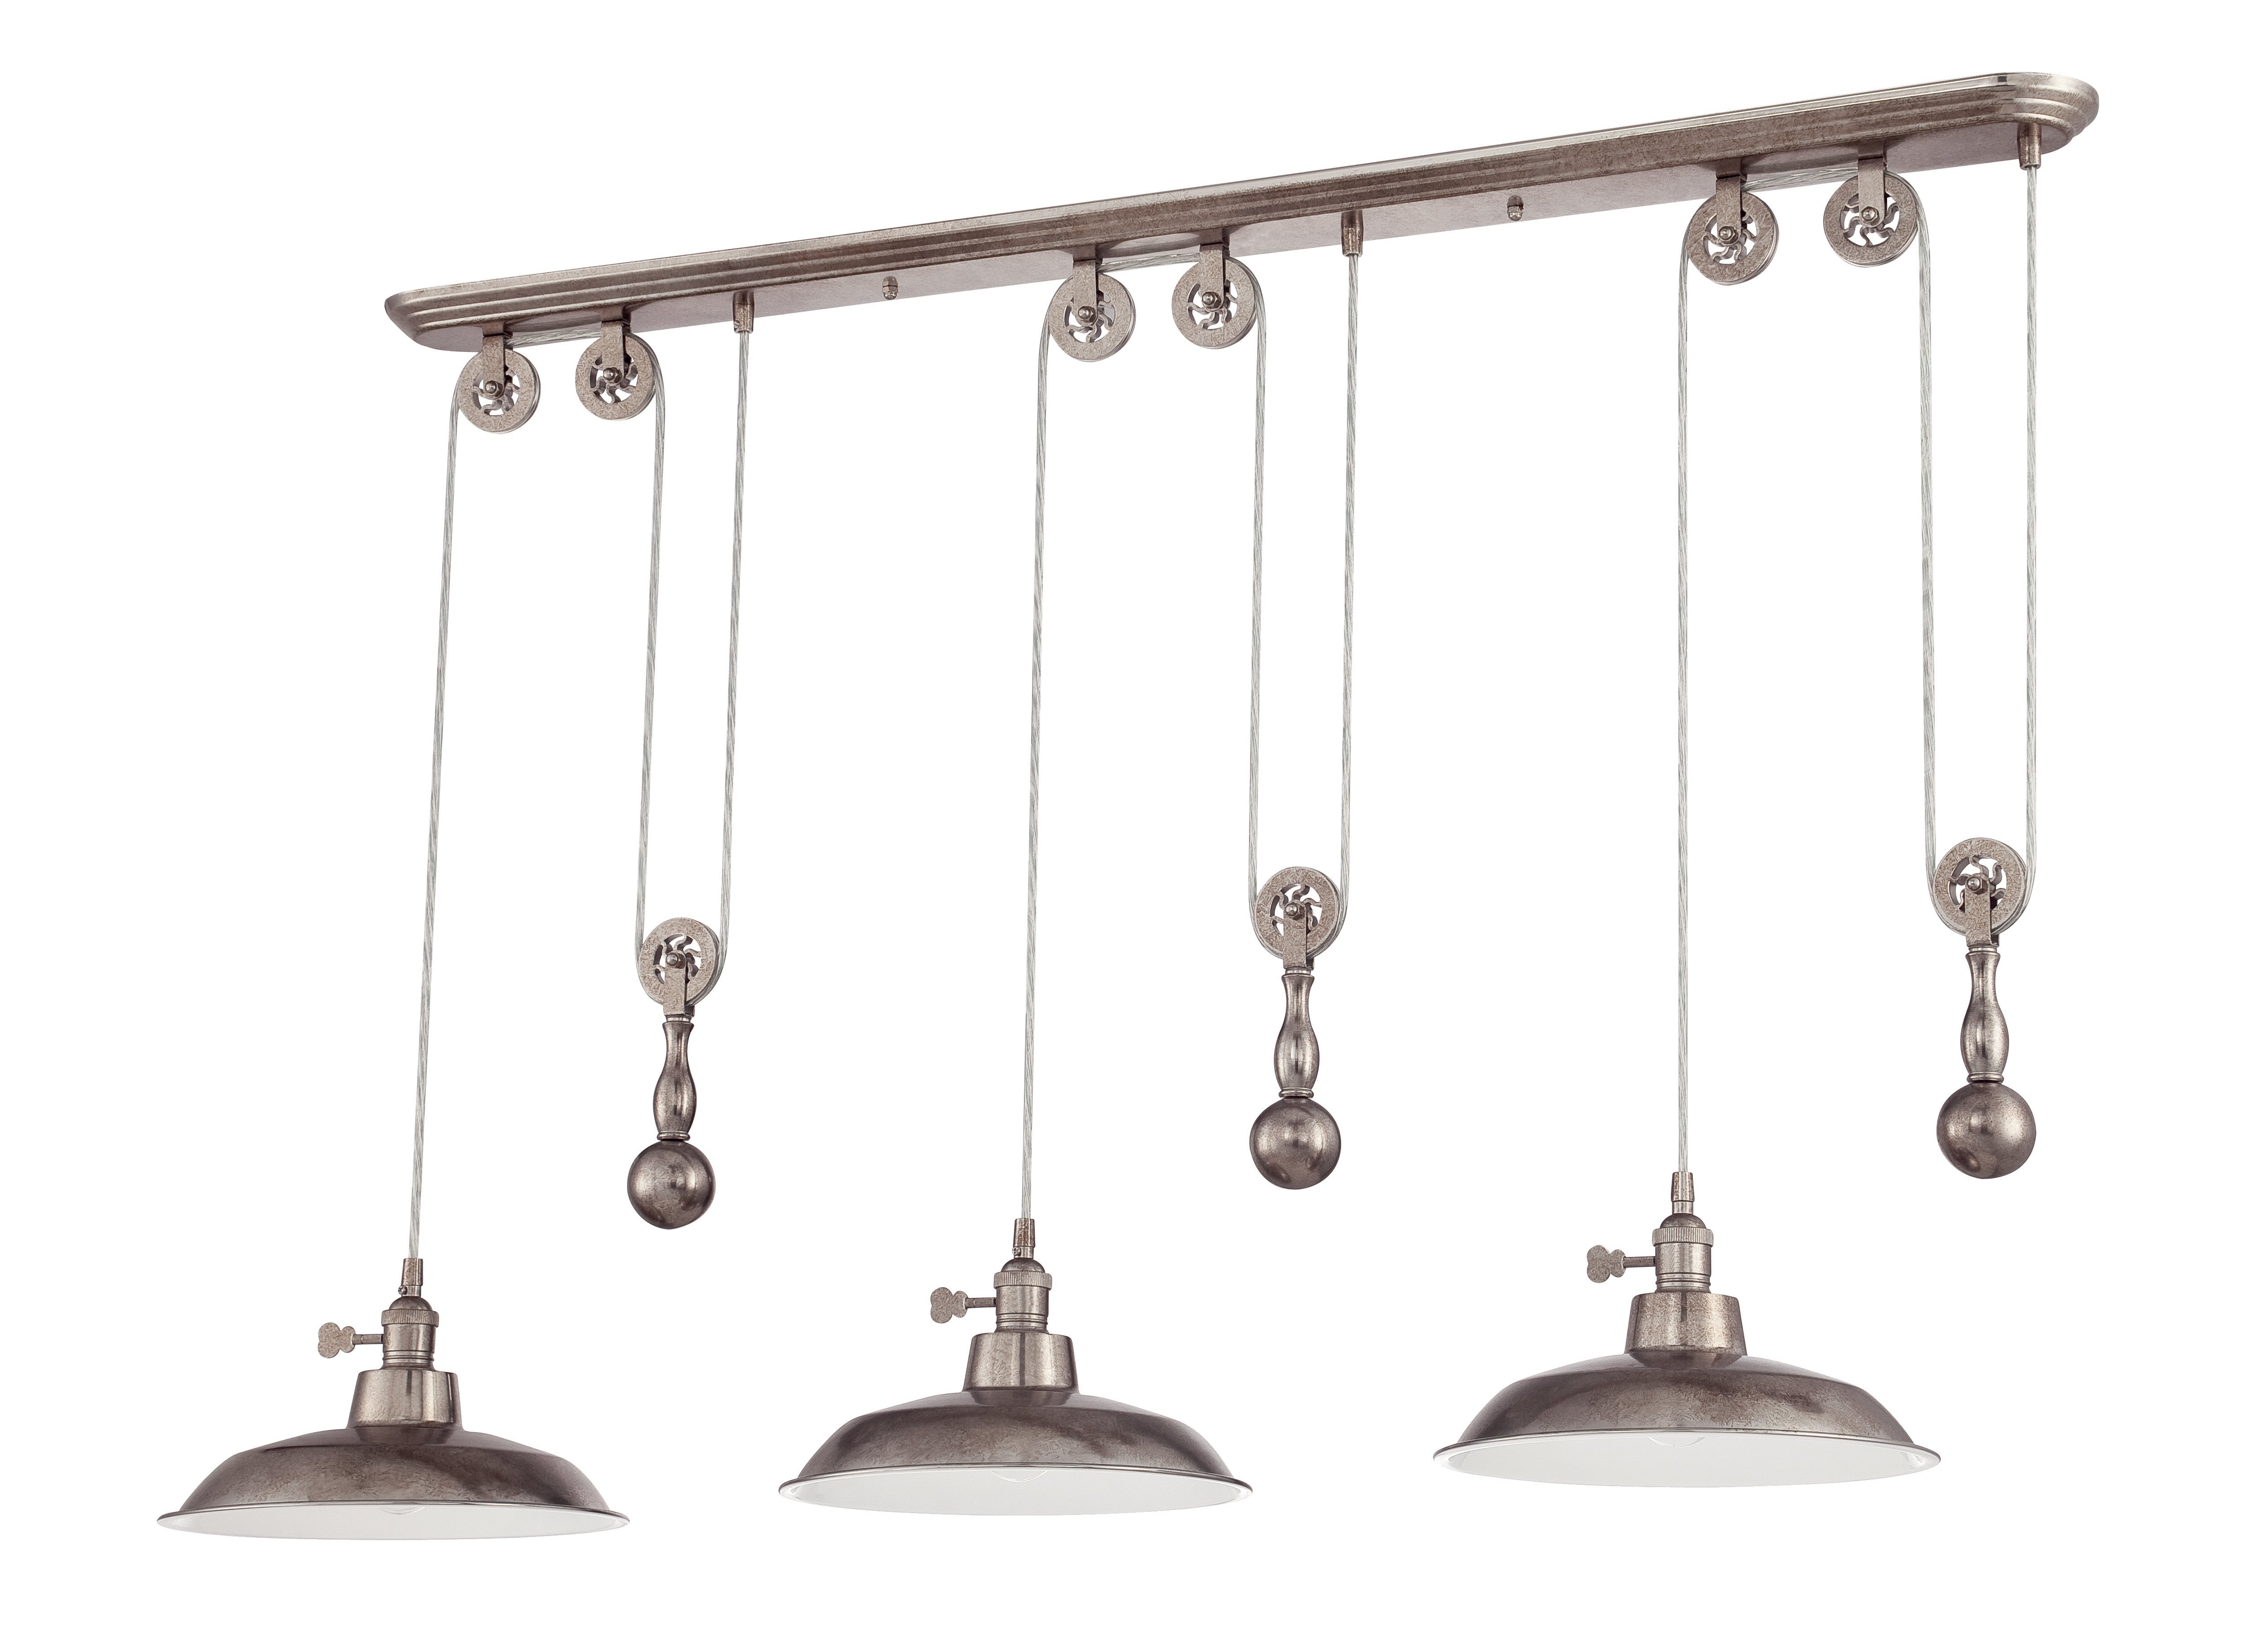 Ariel 3 Light Kitchen Island Dome Pendant For Popular Ariel 2 Light Kitchen Island Dome Pendants (View 10 of 25)